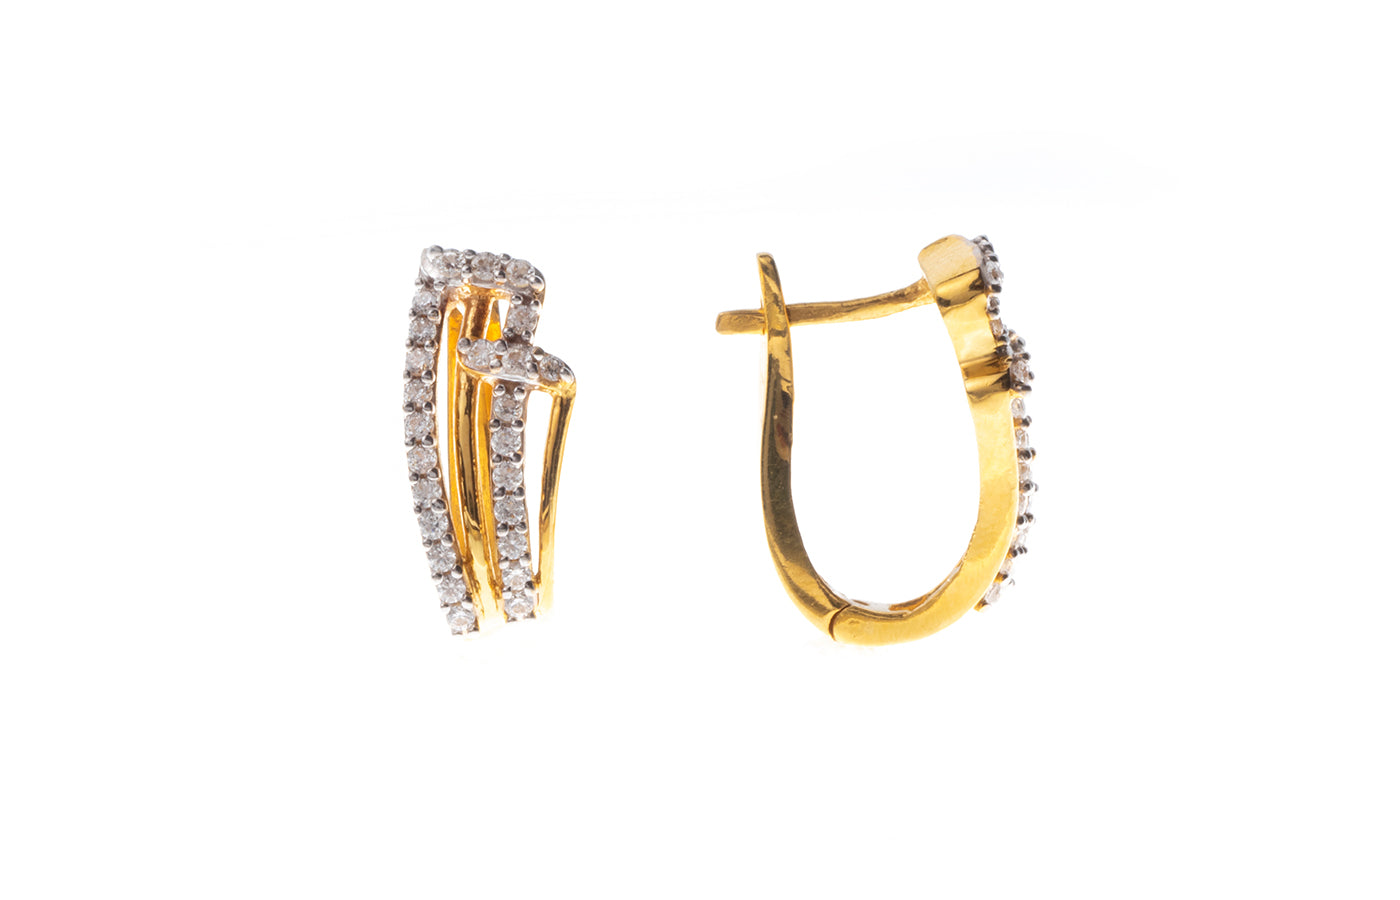 22ct Gold Hoop Earrings set with Swarovski Zirconias (6.83g) BET13026